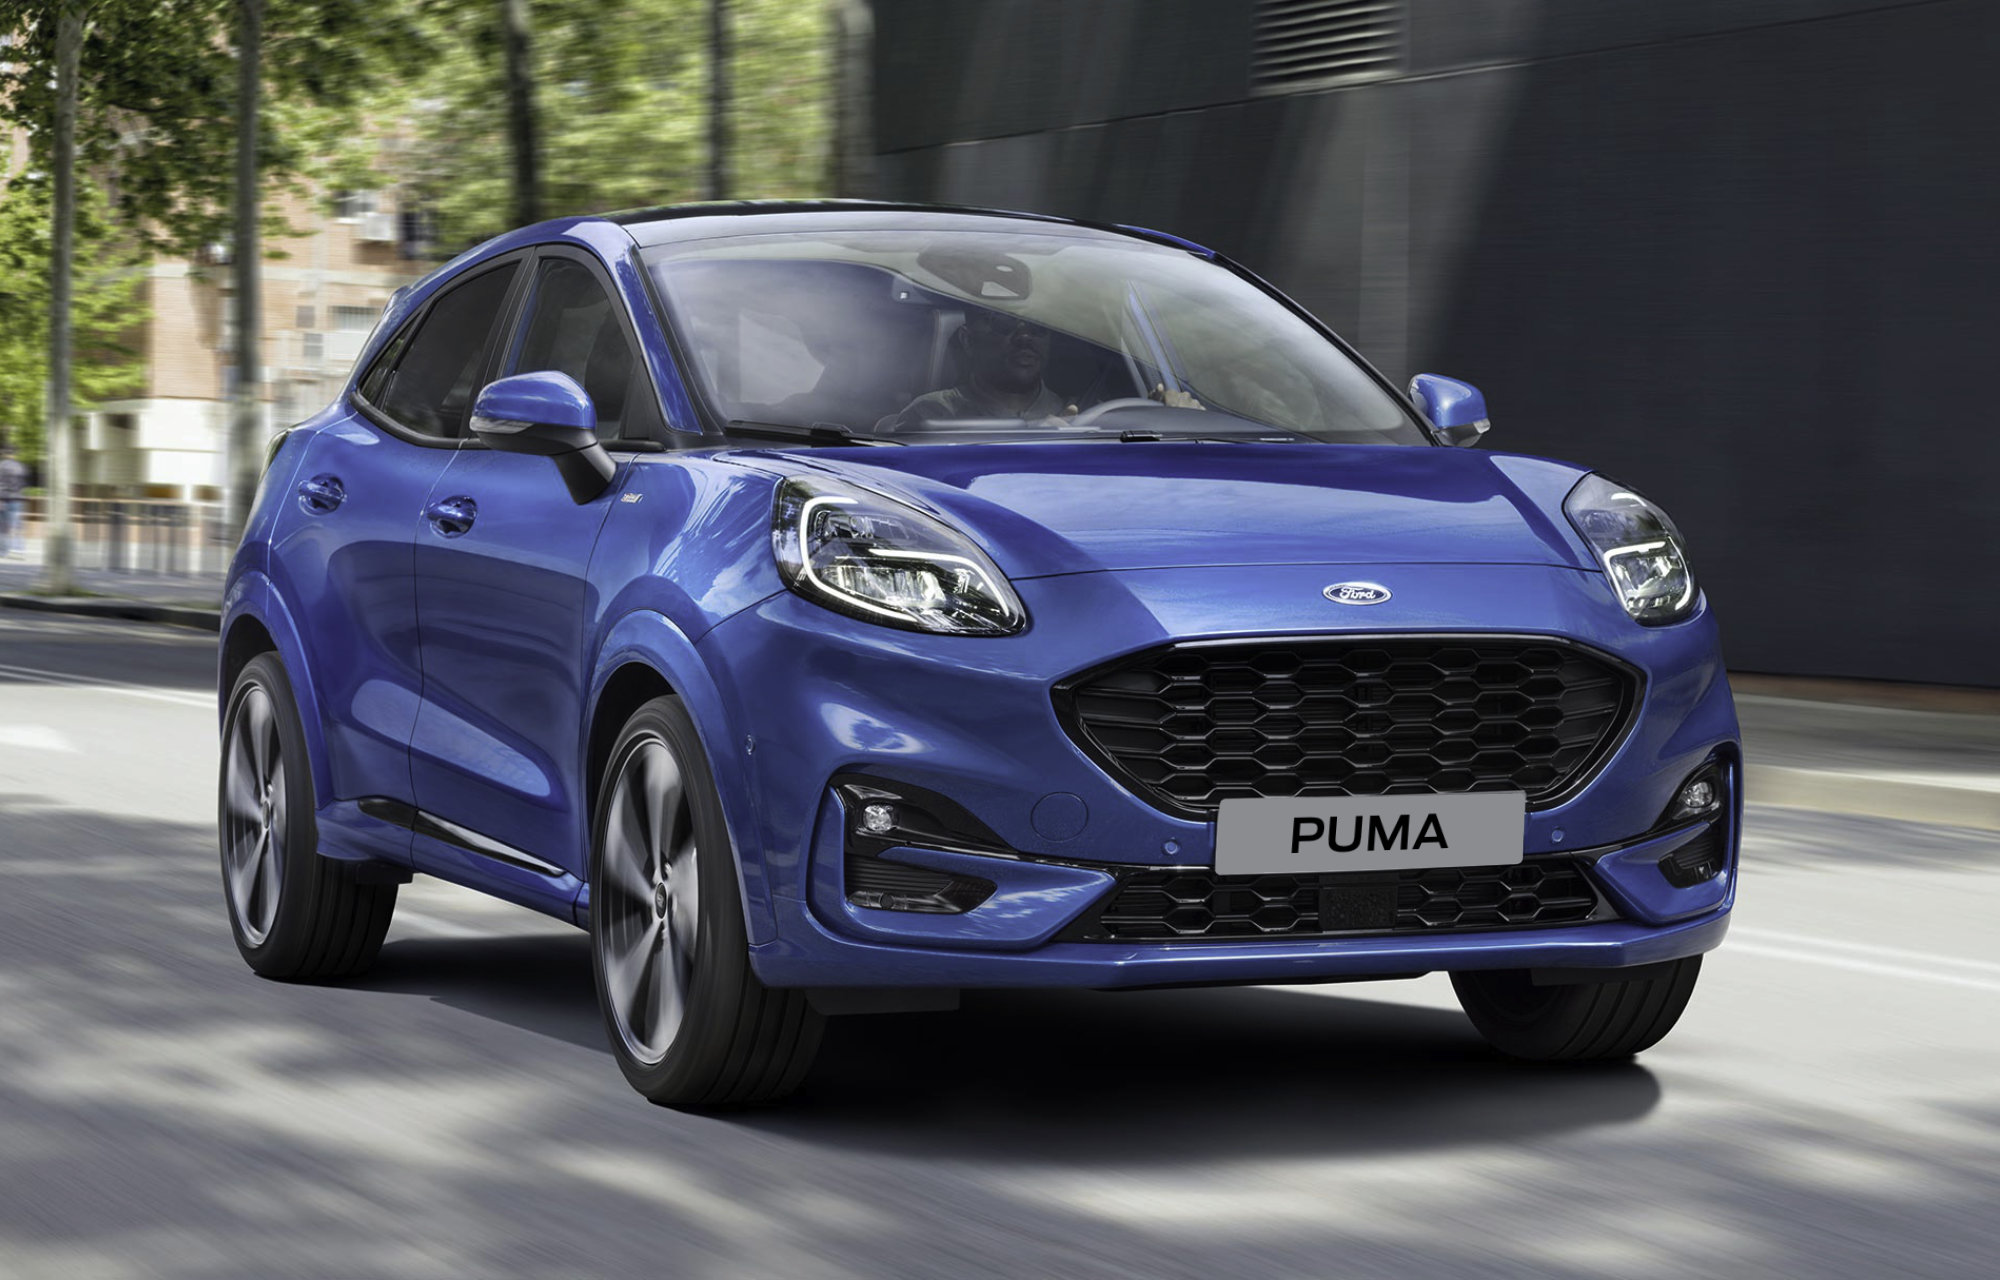 Ford Puma - Technology to make driving a joy